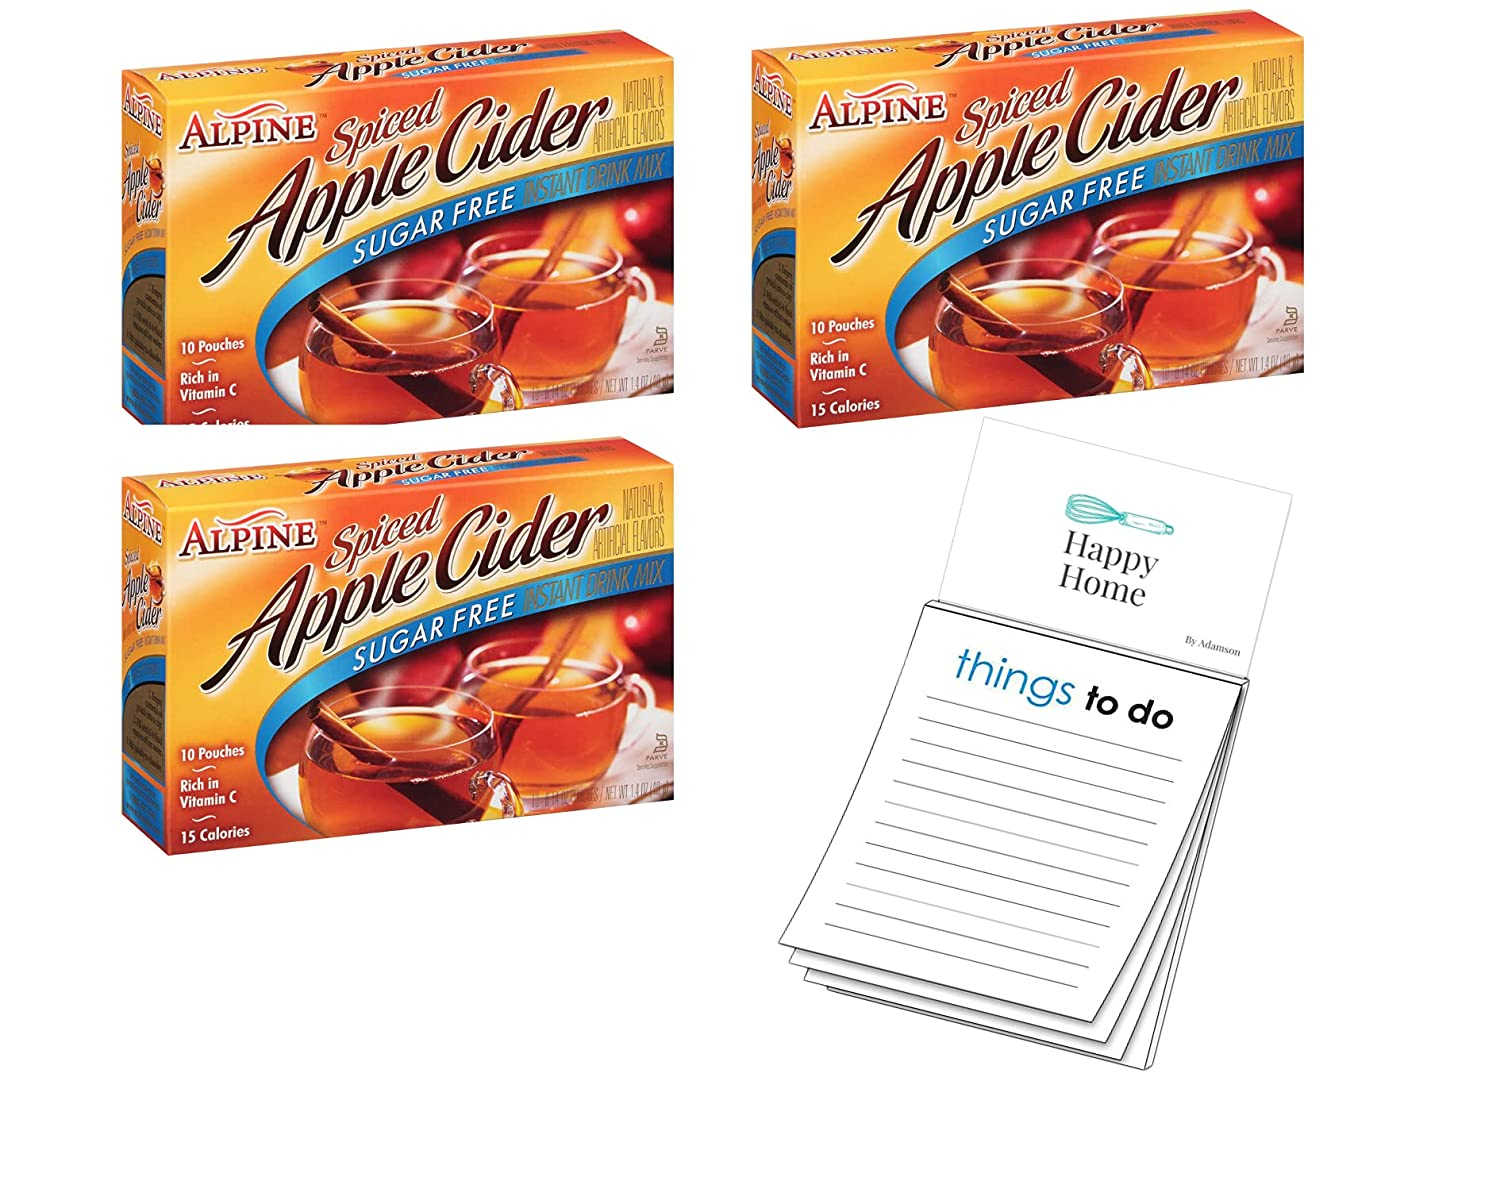 Alpine,Sugar Free Spiced Cider, Apple Flavored Drink Mix, 1.4oz Box (Pack of 3) 30 packet